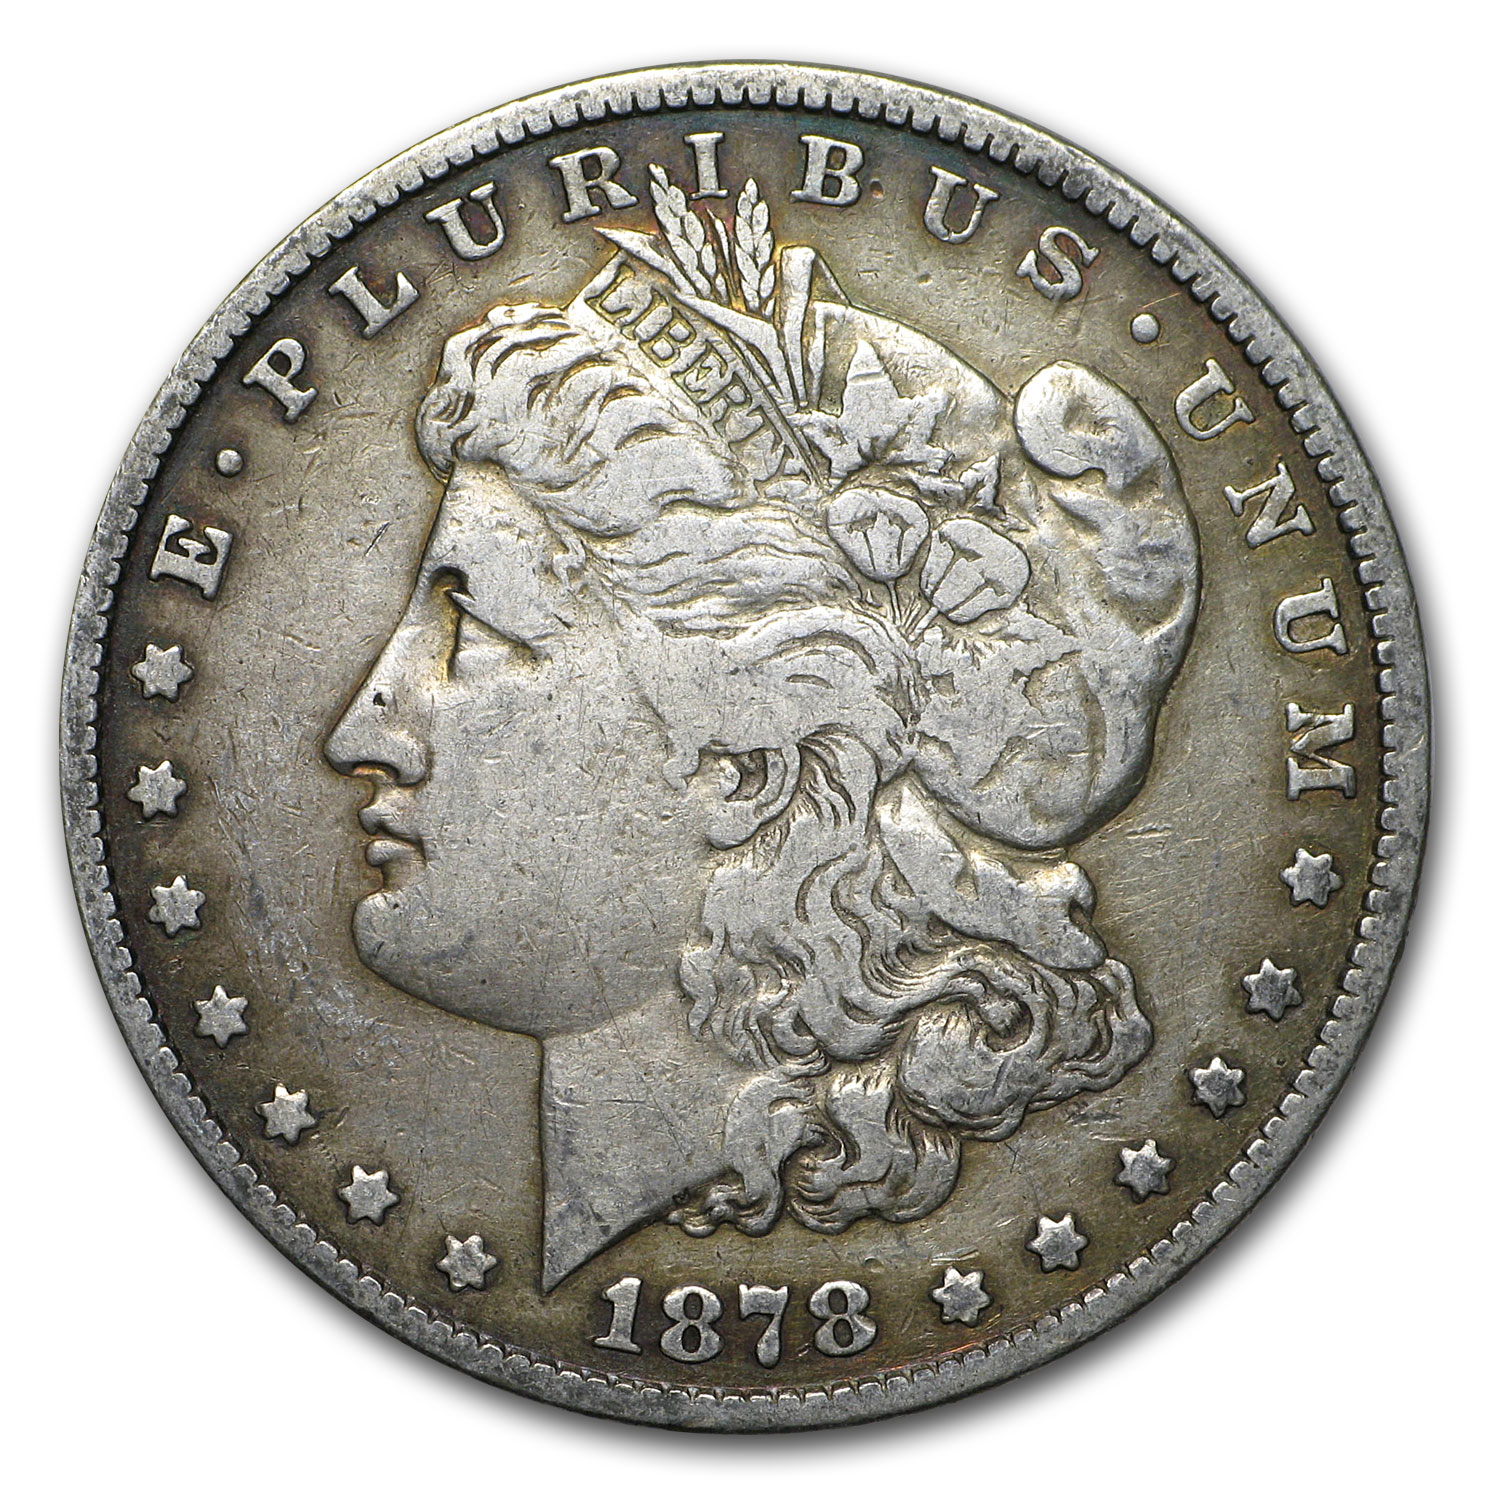 1878 Morgan Dollar 7 Tailfeathers Rev of 78 VG/XF